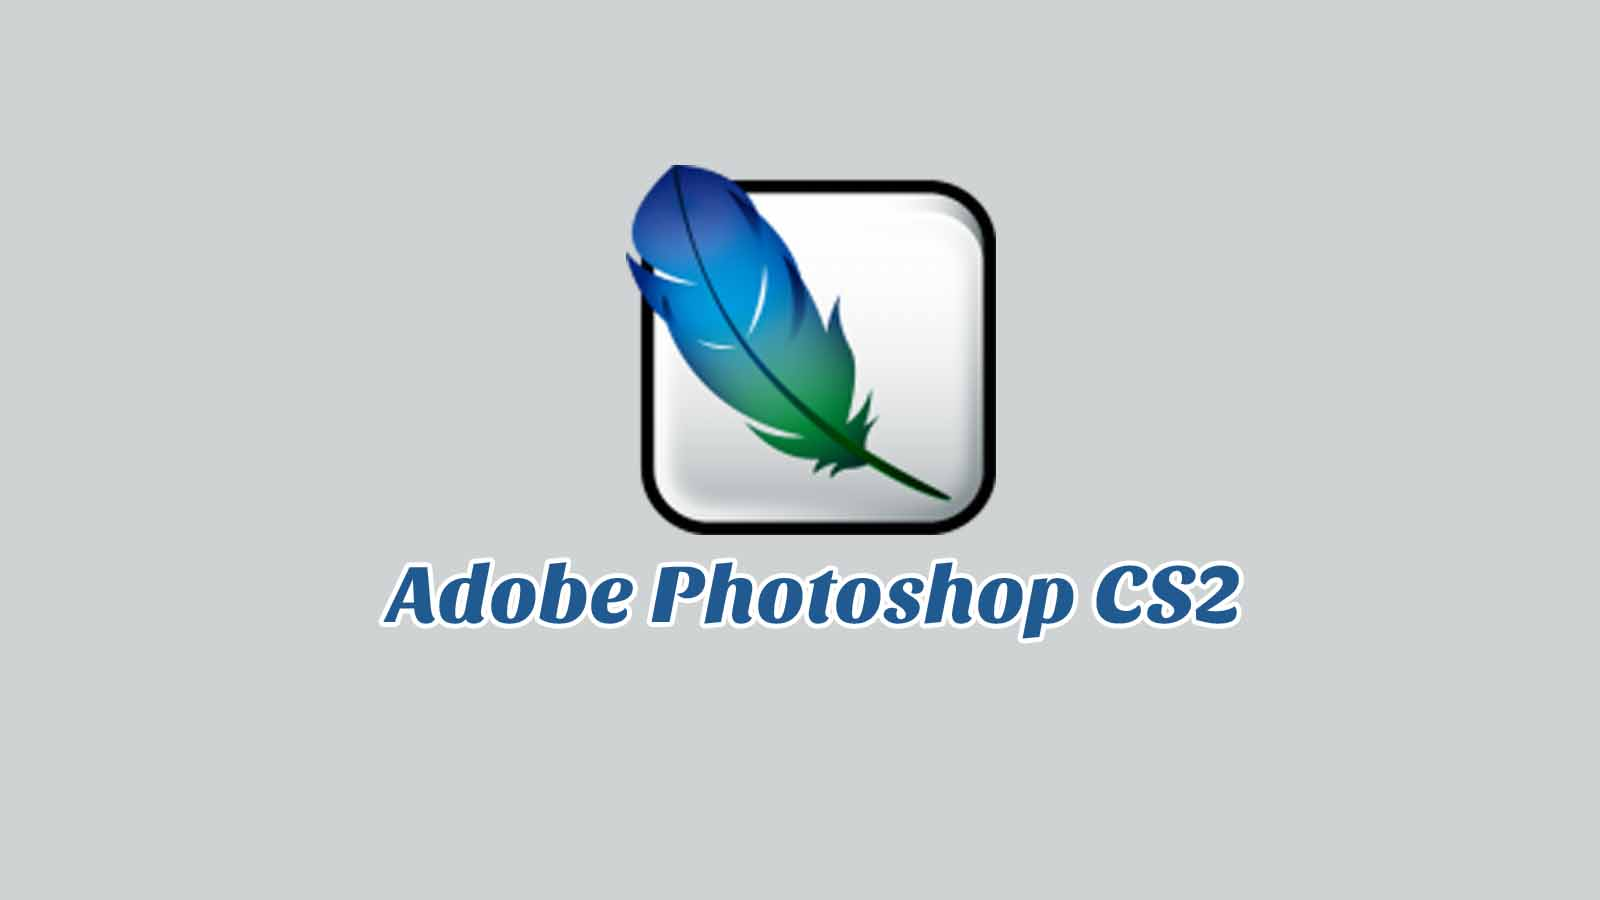 Daftar Isi Adobe Photoshop CS2